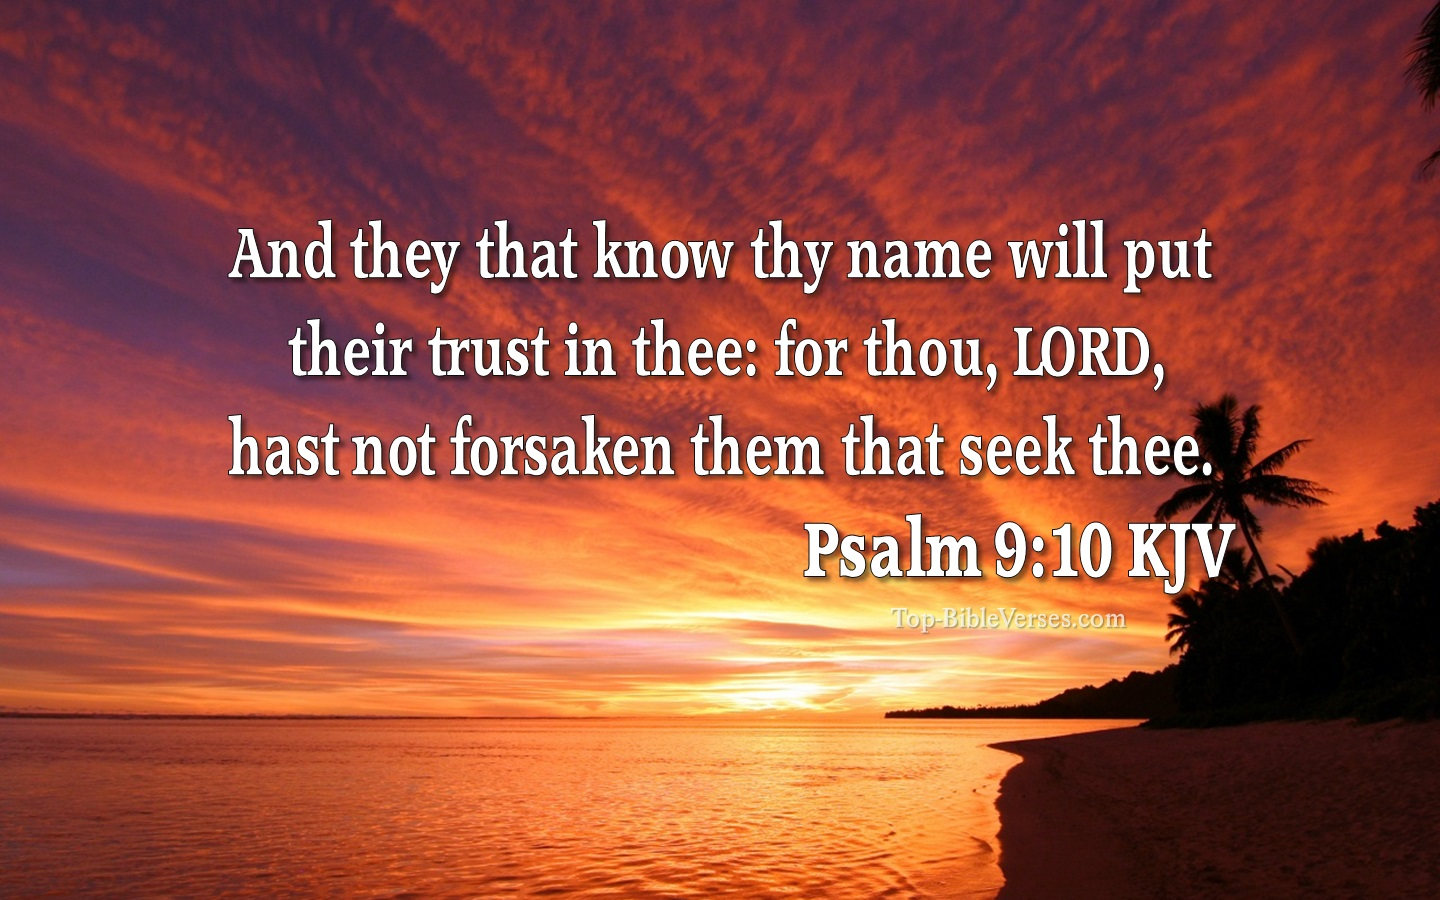 Psalm 9 KJV Inspirational Bible Verse Images | Psalm 9 Bible Quotes